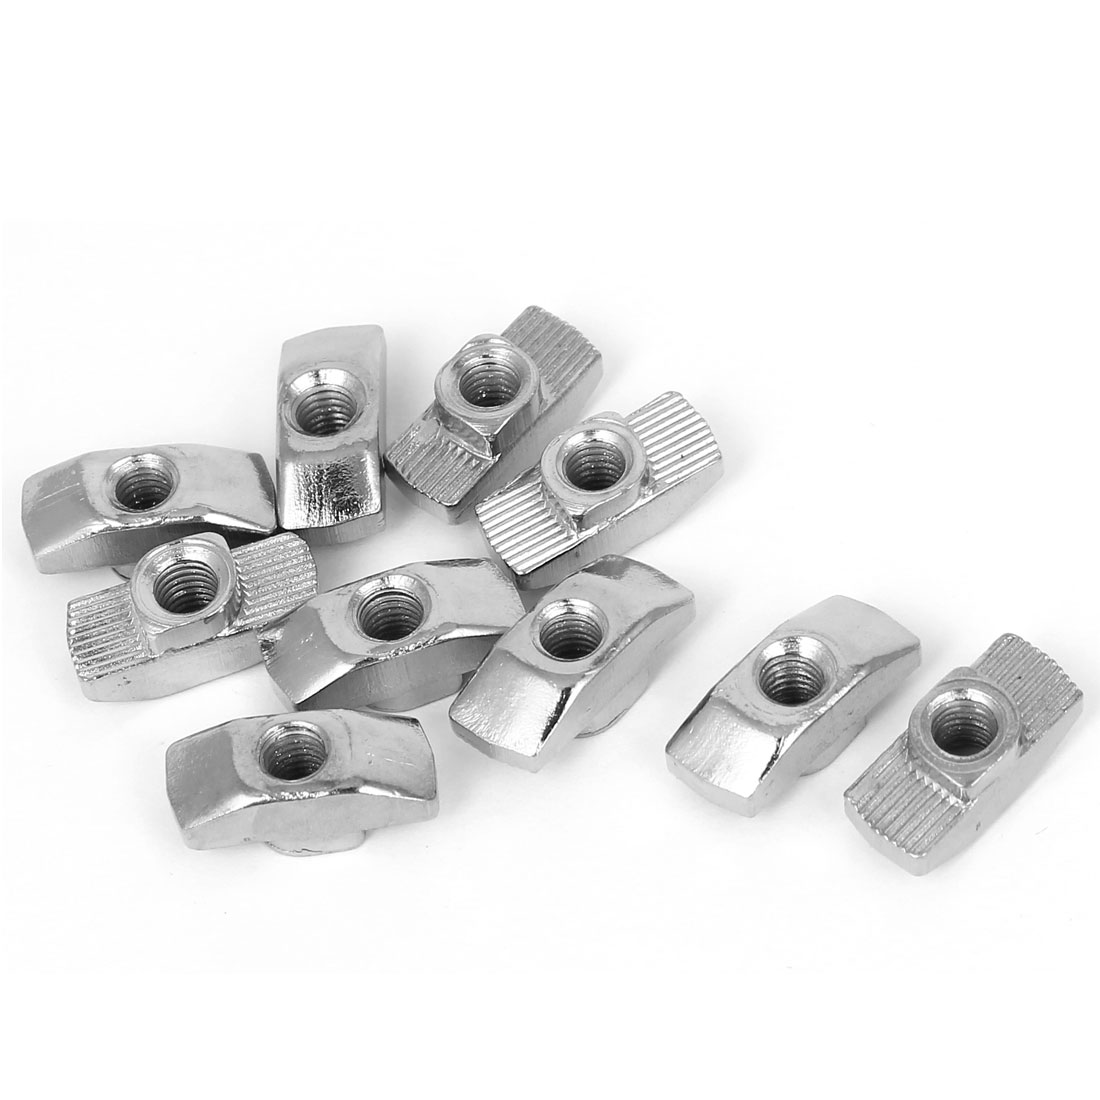 10 Pcs M5 Thread T-slot Drop In T-Nuts for 40 Series European Aluminum Extrusion